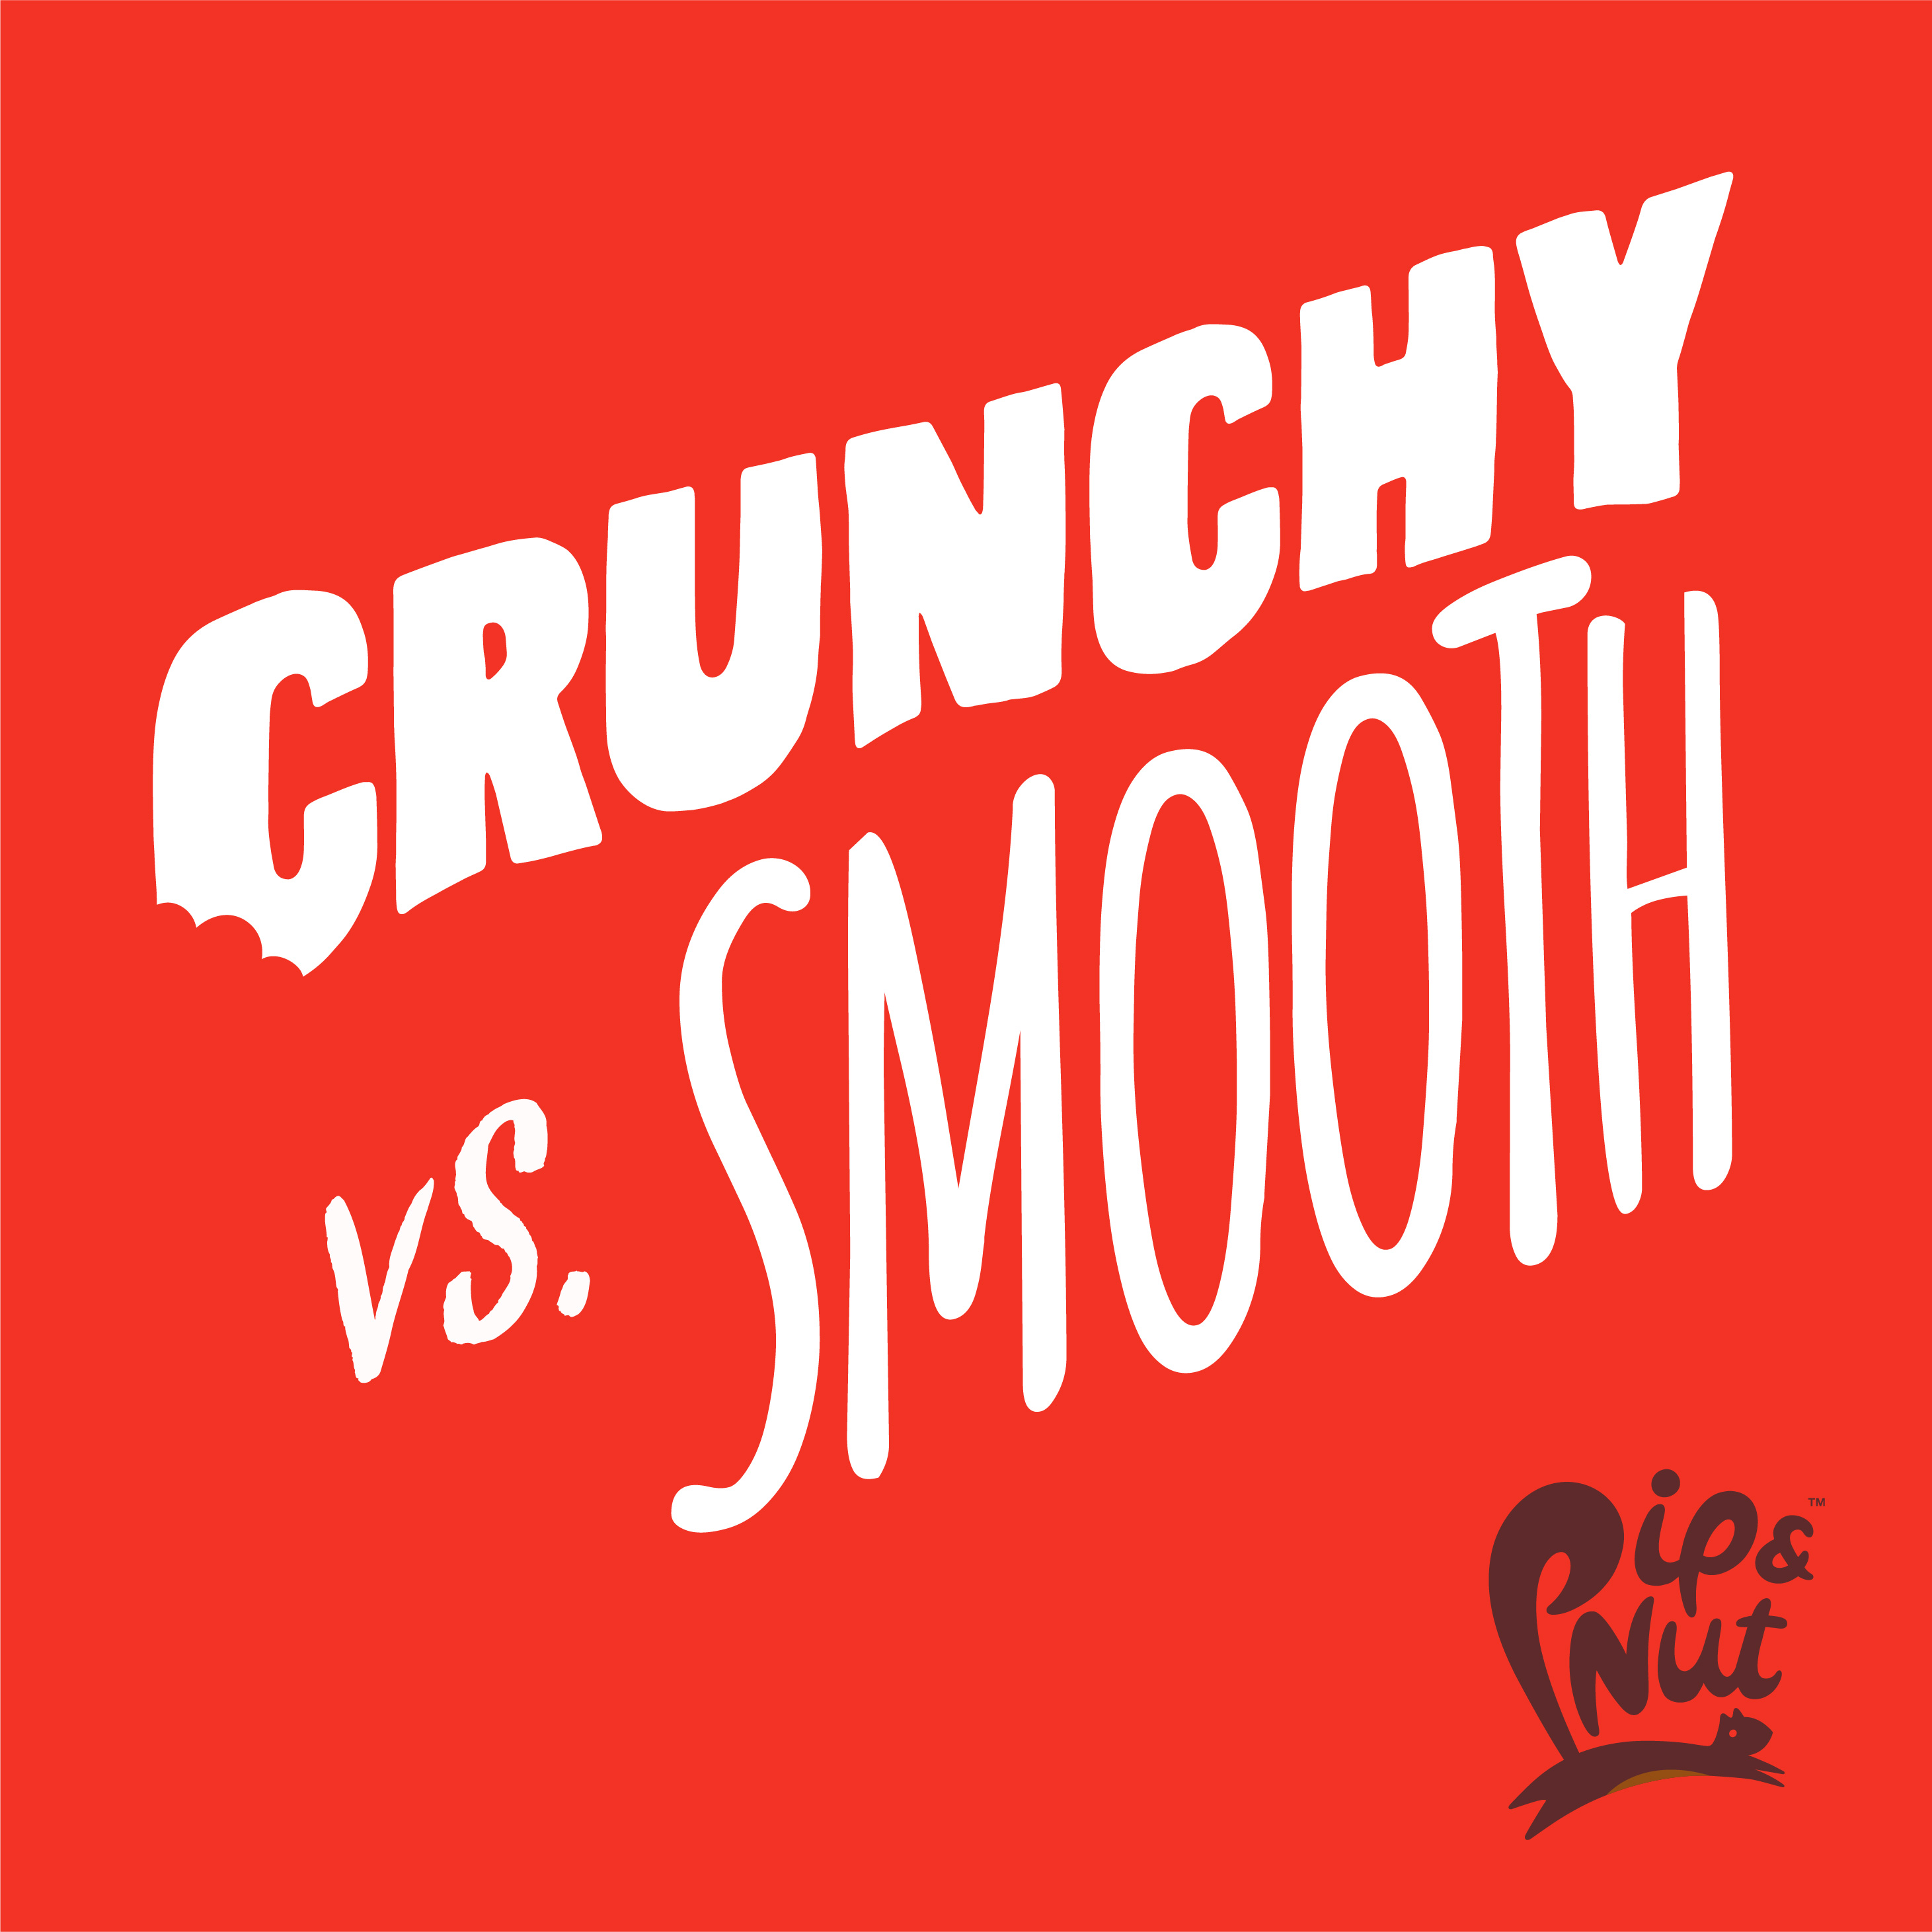 Crunchy vs Smooth